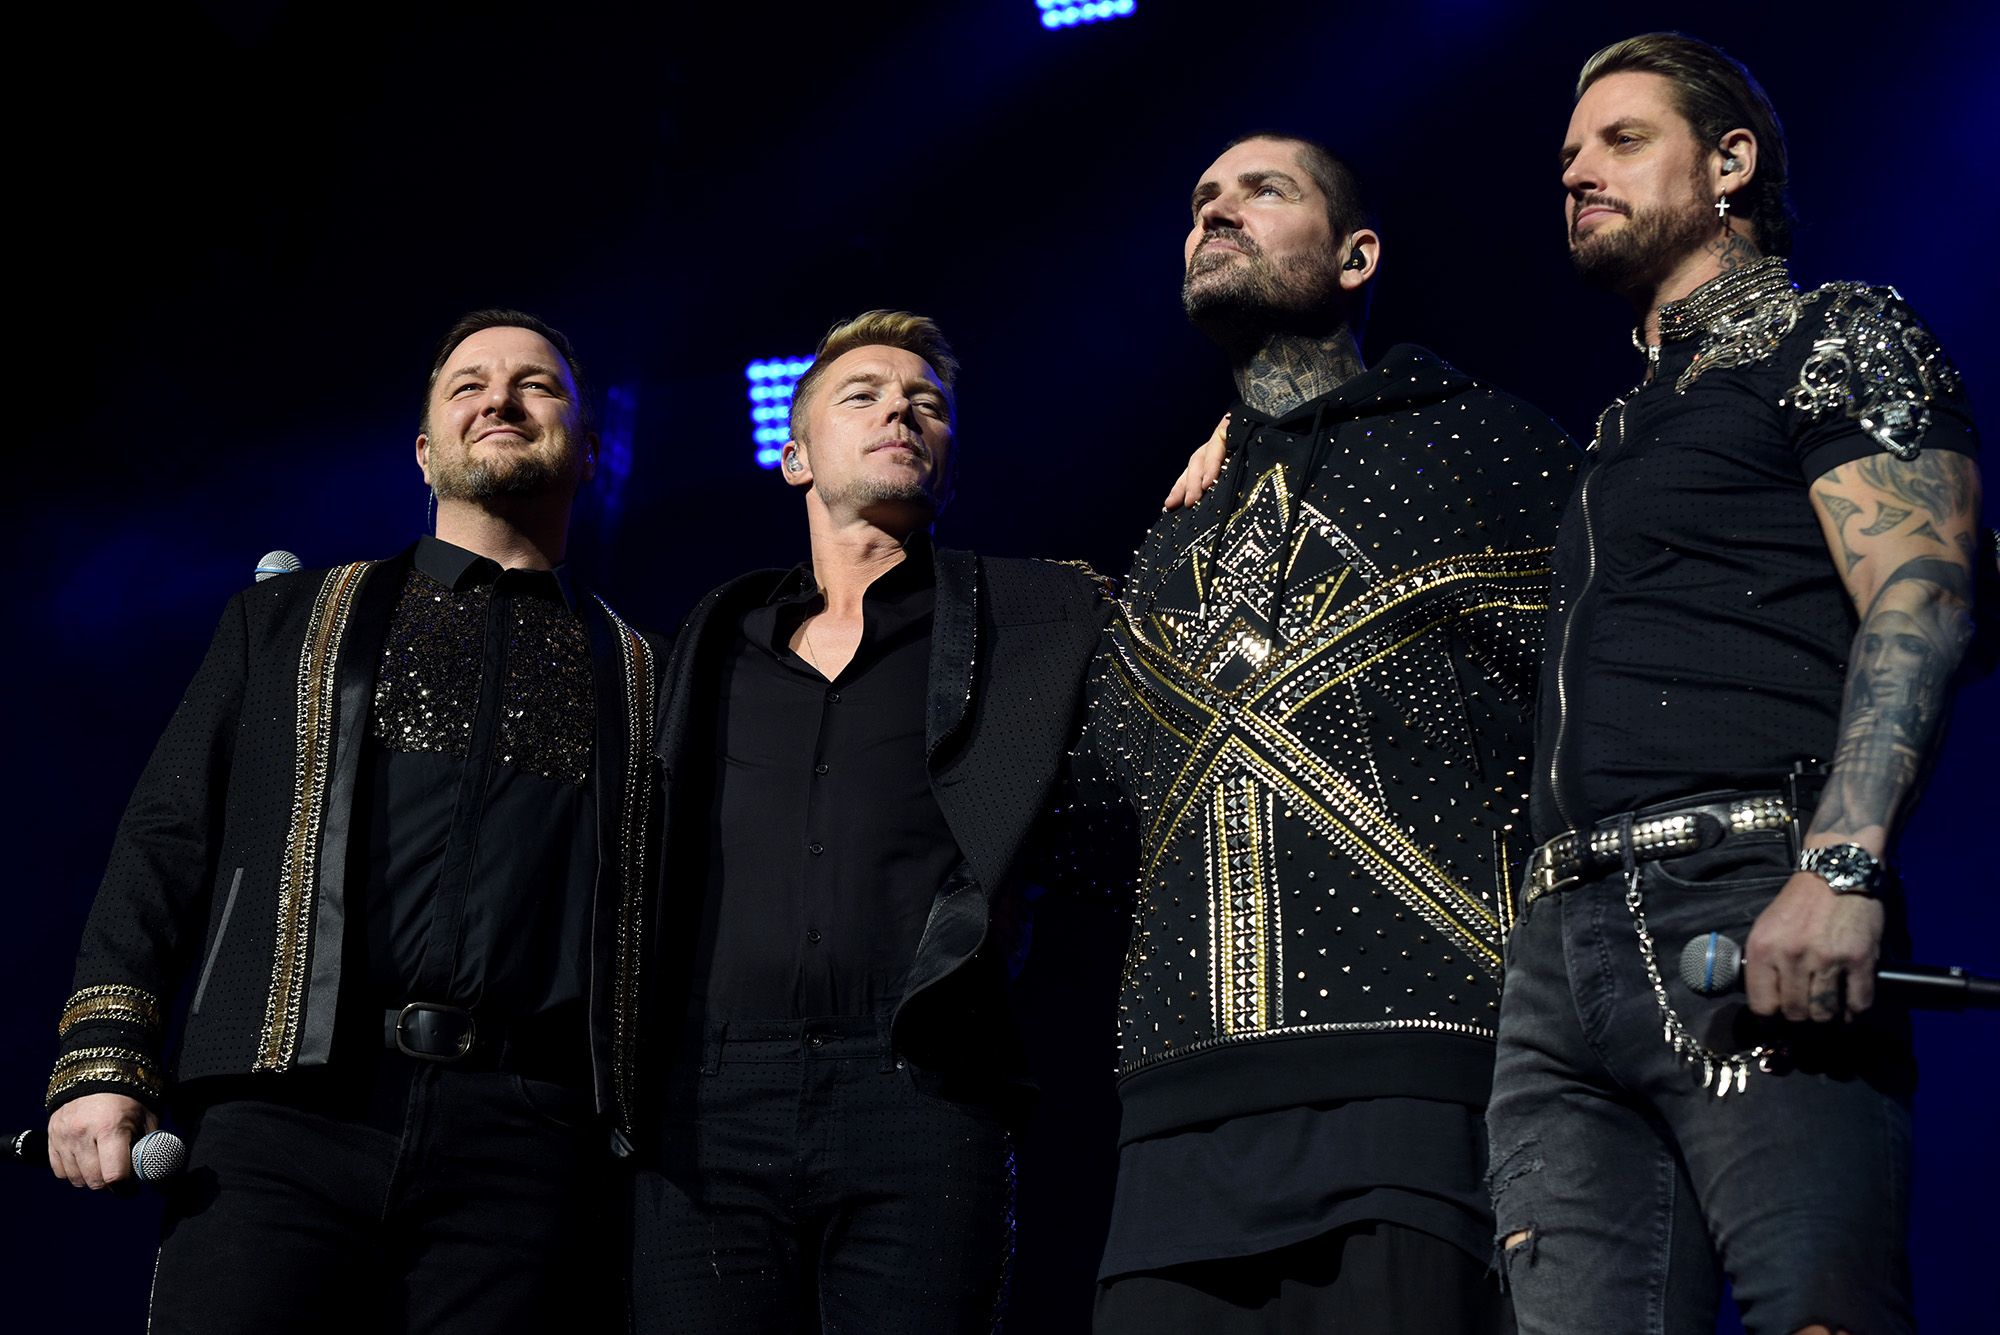 BOYZONE AT LEEDS ARENA